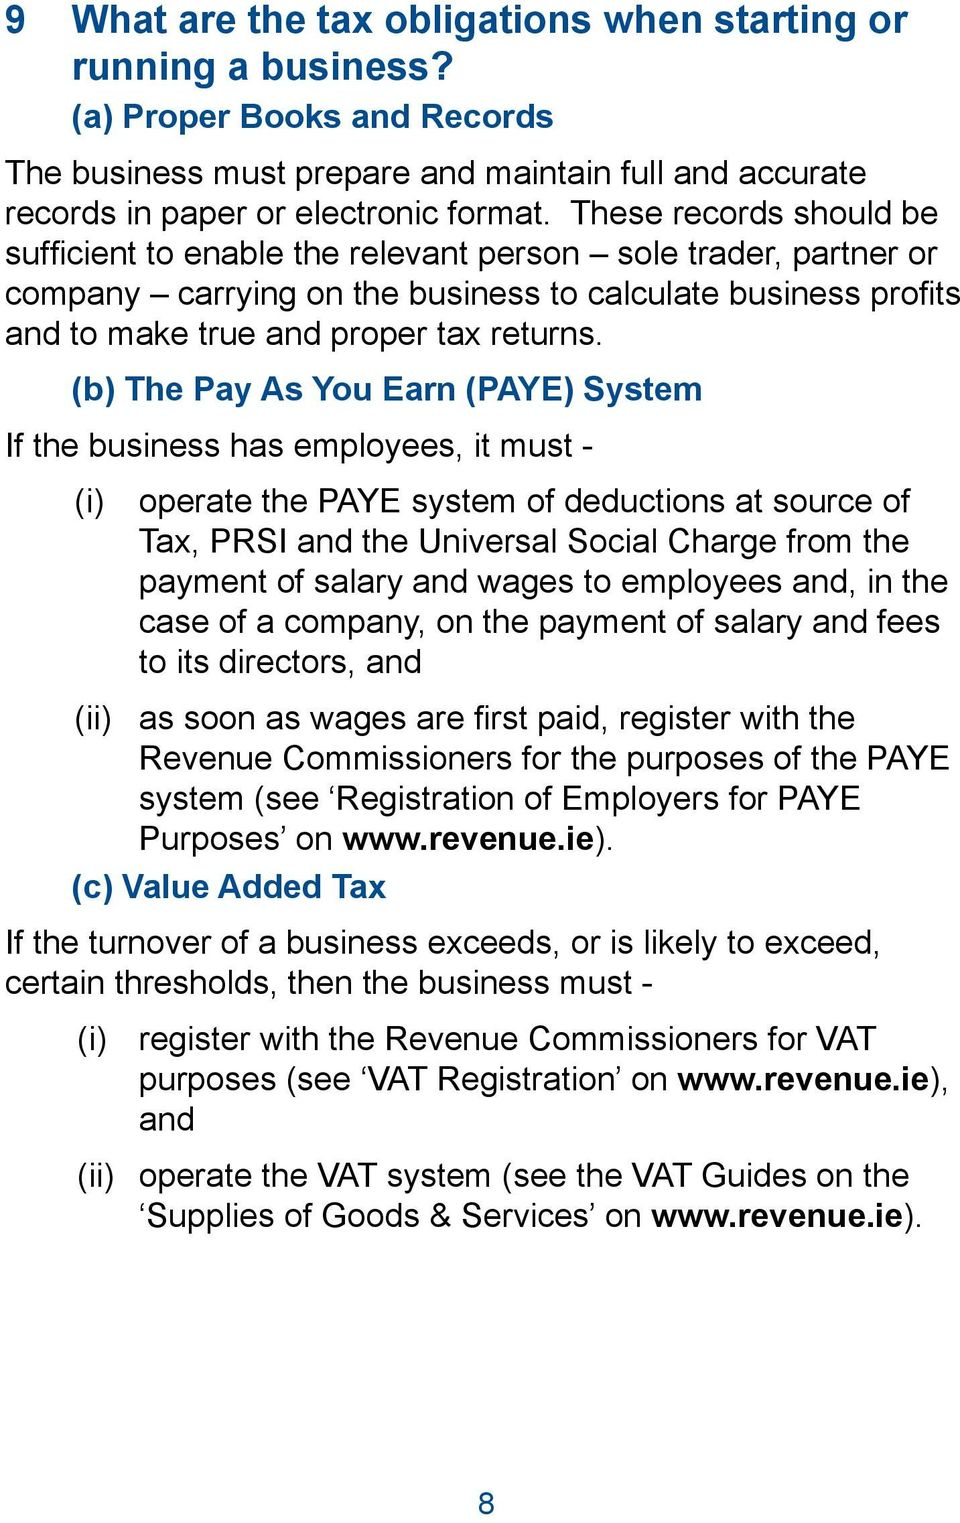 (b) The Pay As You Earn (PAYE) System If the business has employees, it must - (i) operate the PAYE system of deductions at source of Tax, PRSI and the Universal Social Charge from the payment of